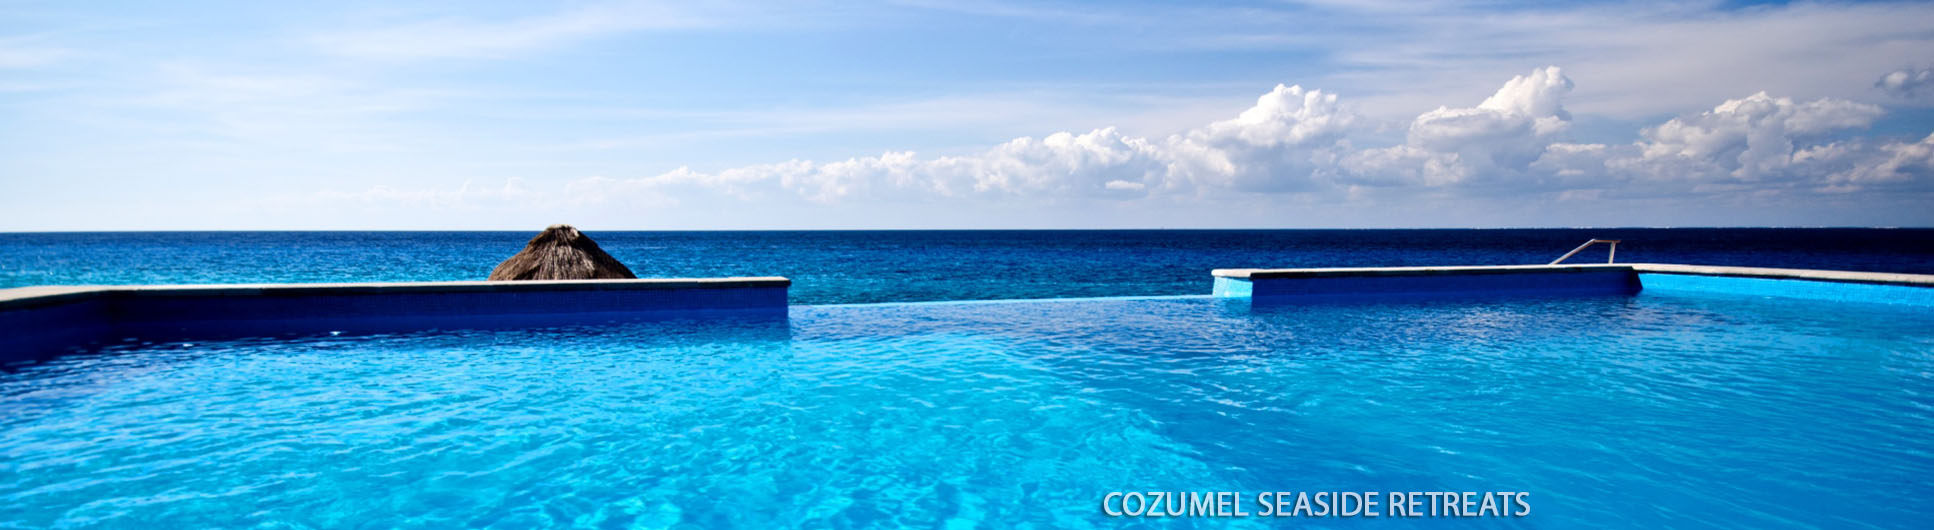 cozumel car rental